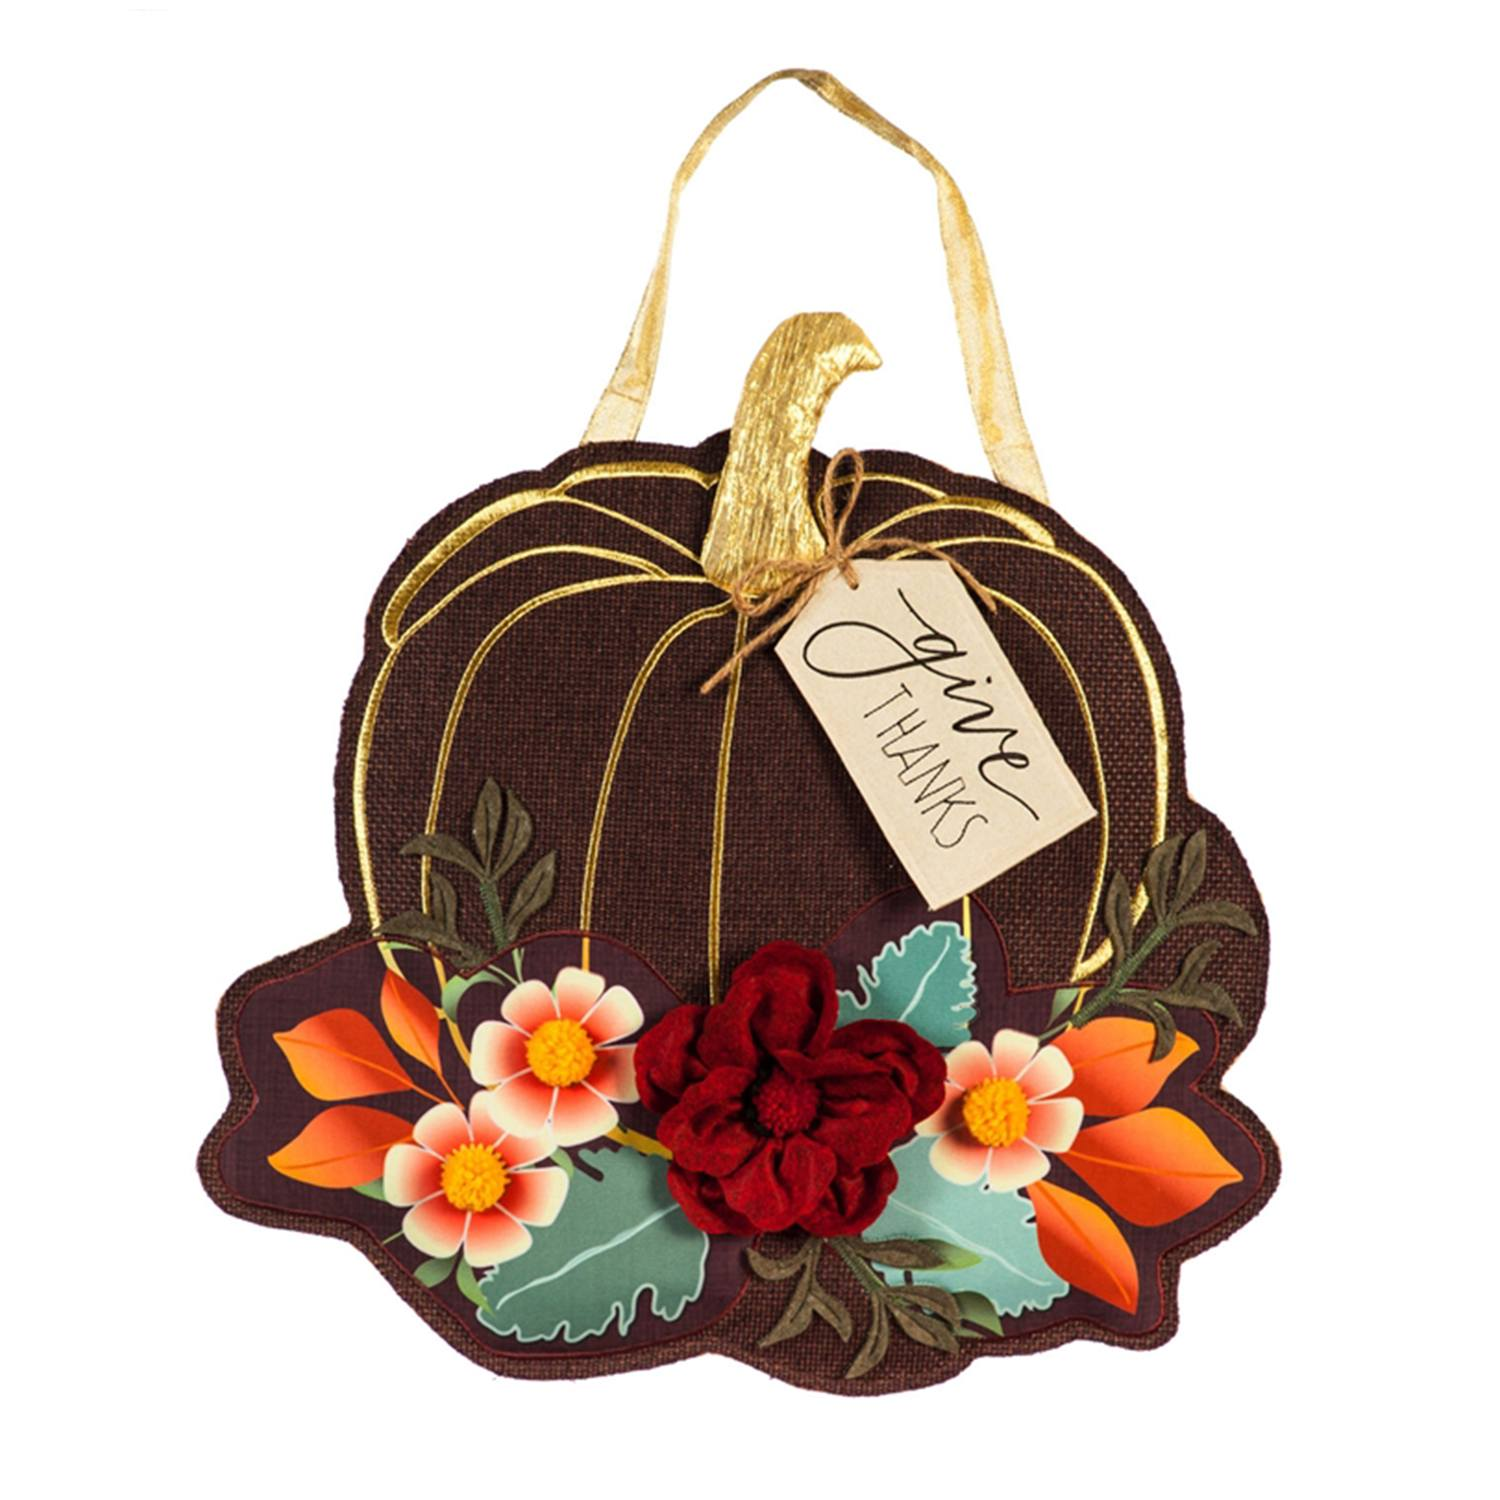 Give Thanks Floral Pumpkin Burlap Door Decor